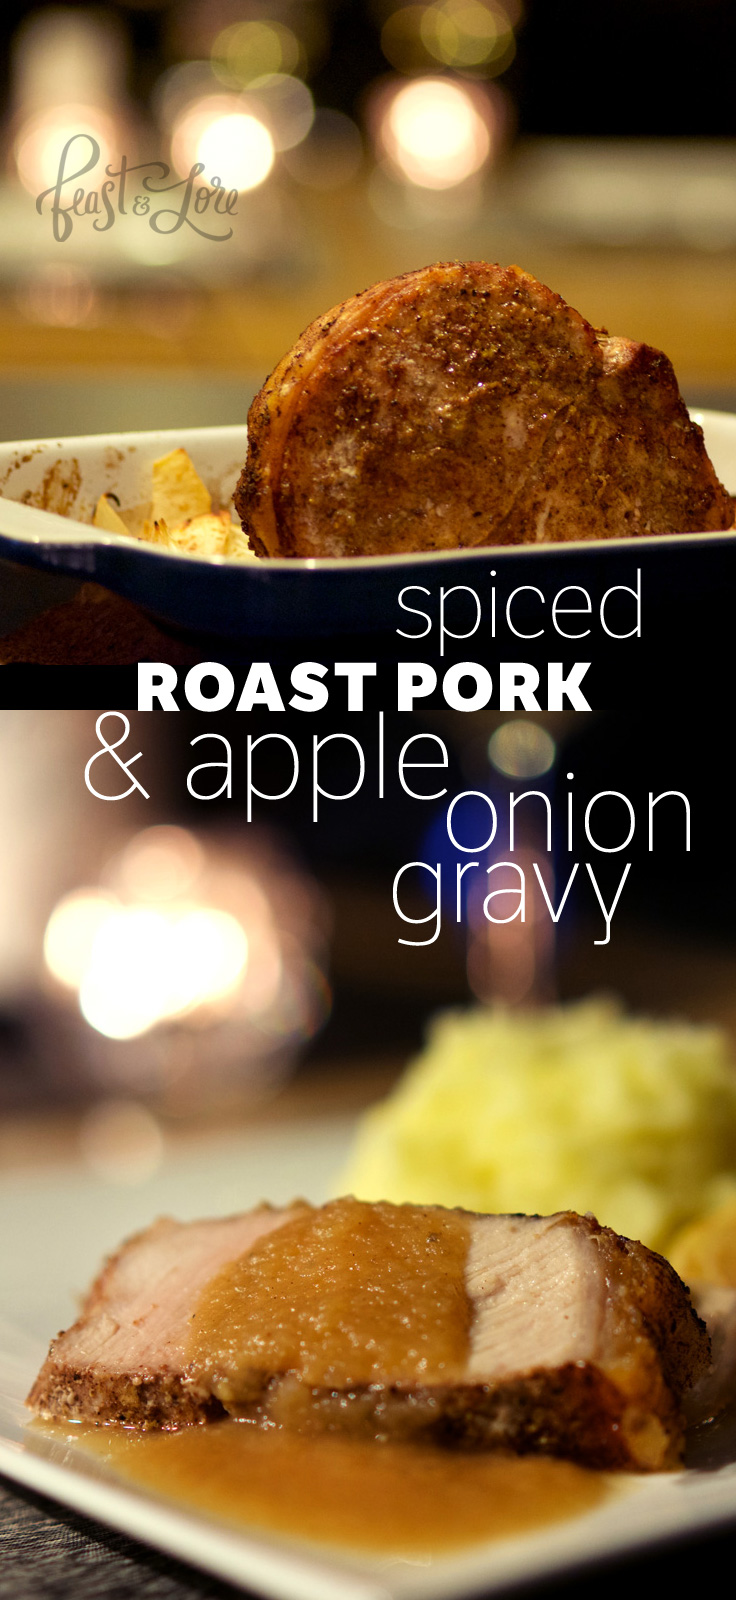 Spiced roast pork with apple onion gravy